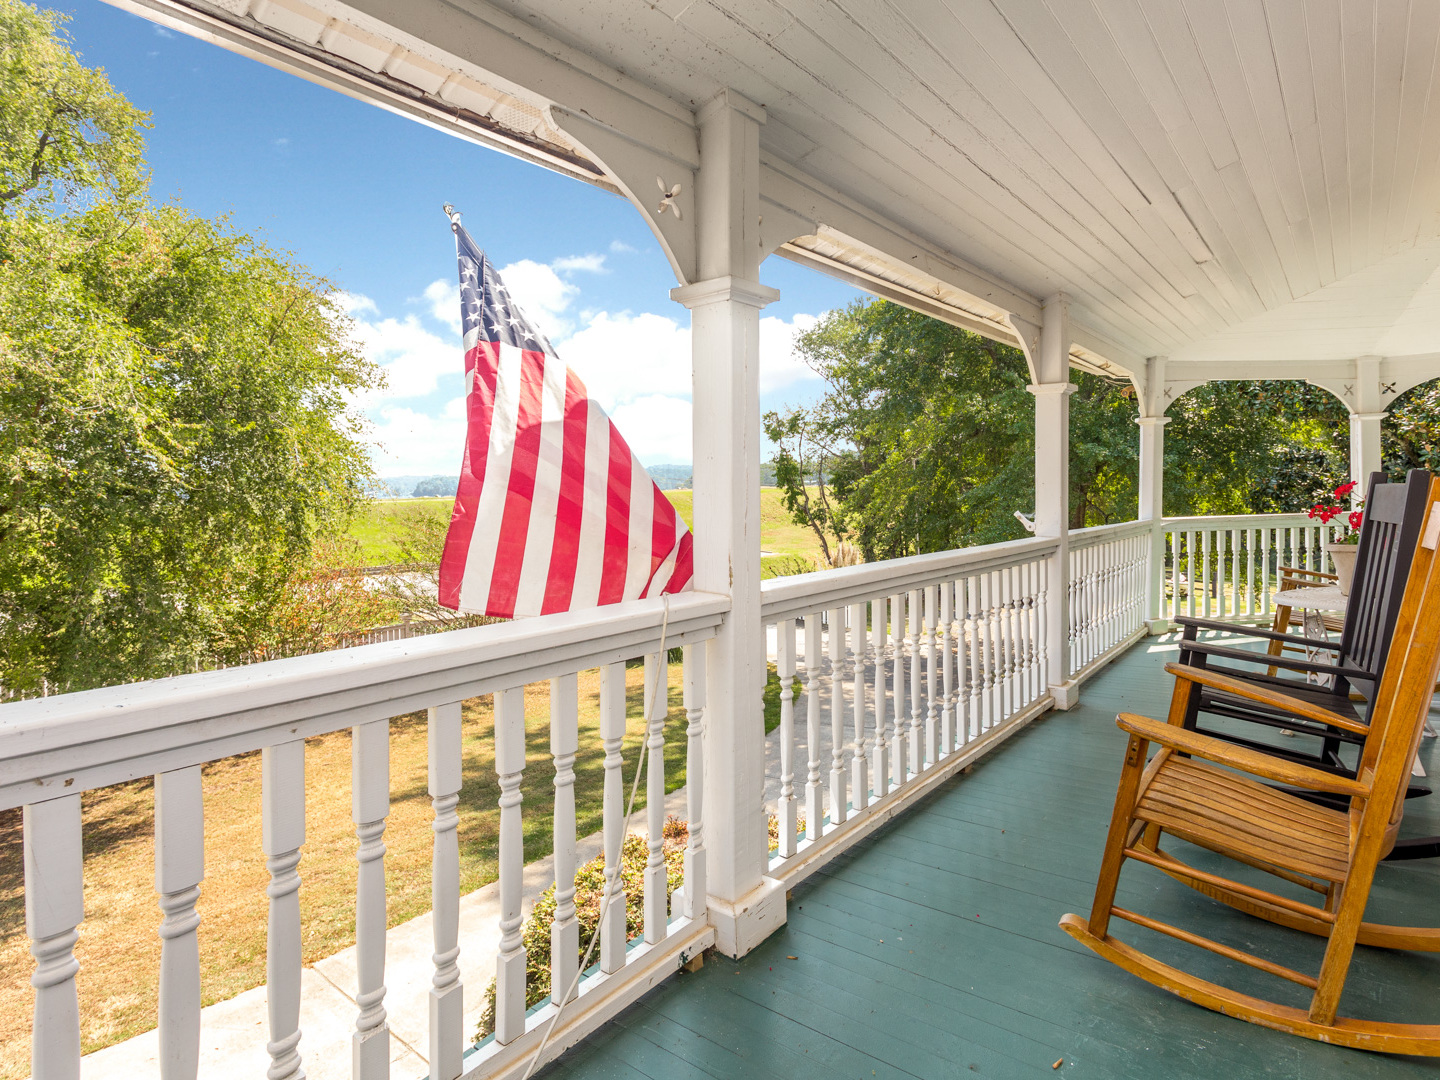 Cartersville Bed and Breakfast